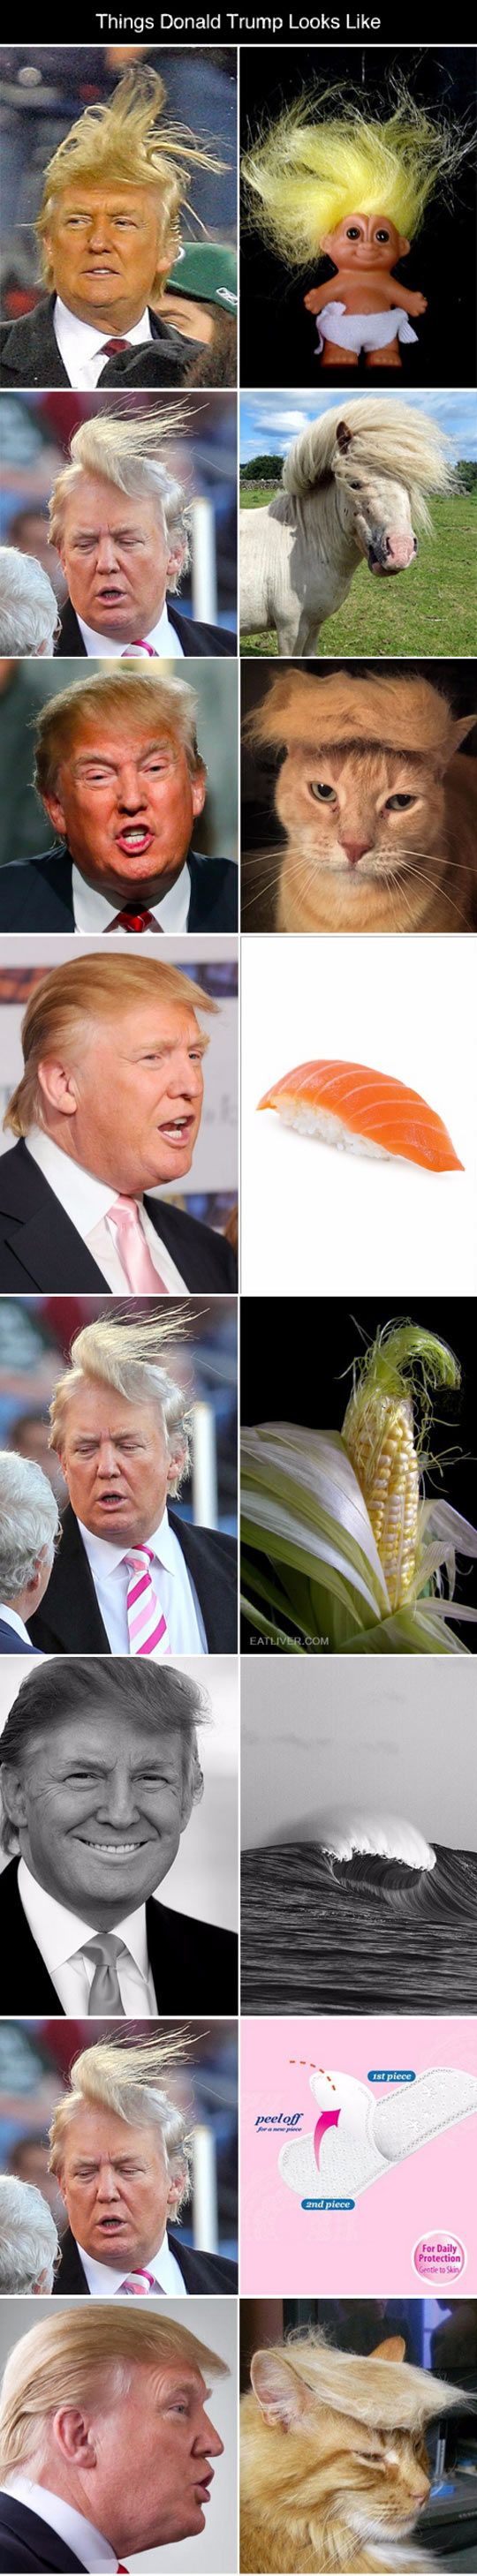 Donald Trump Look Alikes